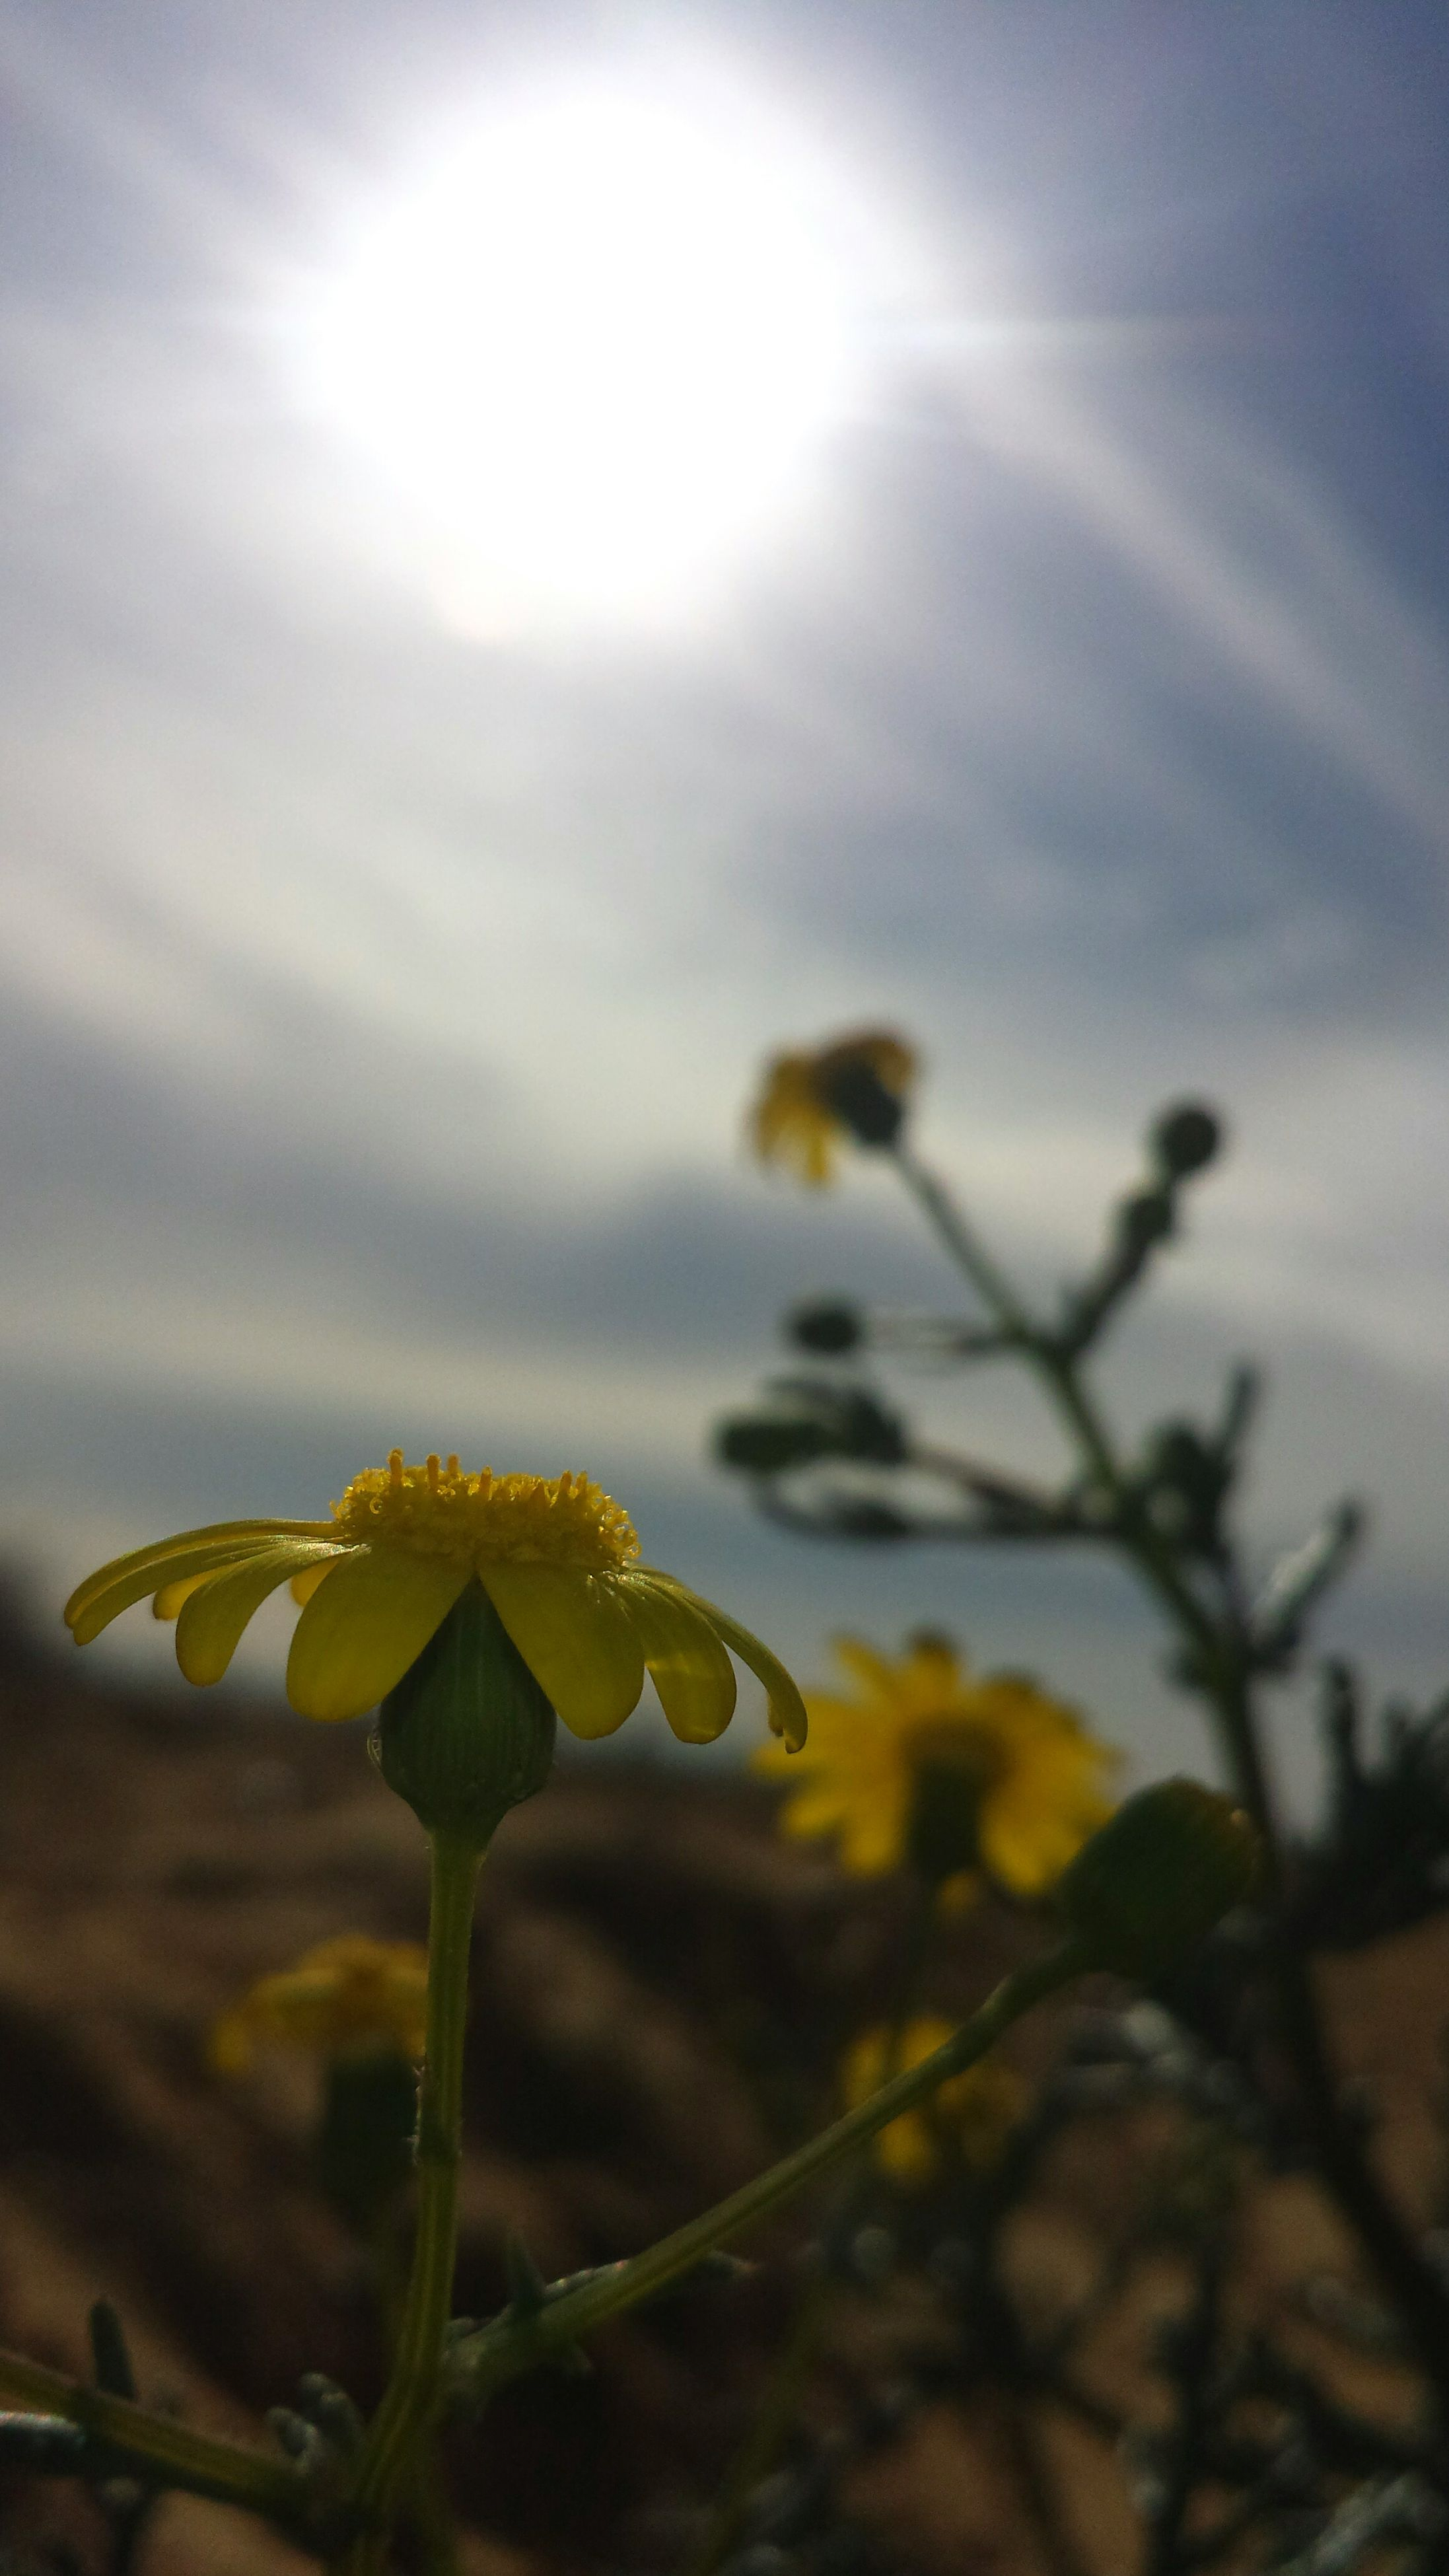 nature, growth, flower, beauty in nature, freshness, fragility, close-up, no people, sky, outdoors, plant, flower head, blooming, sunbeam, day